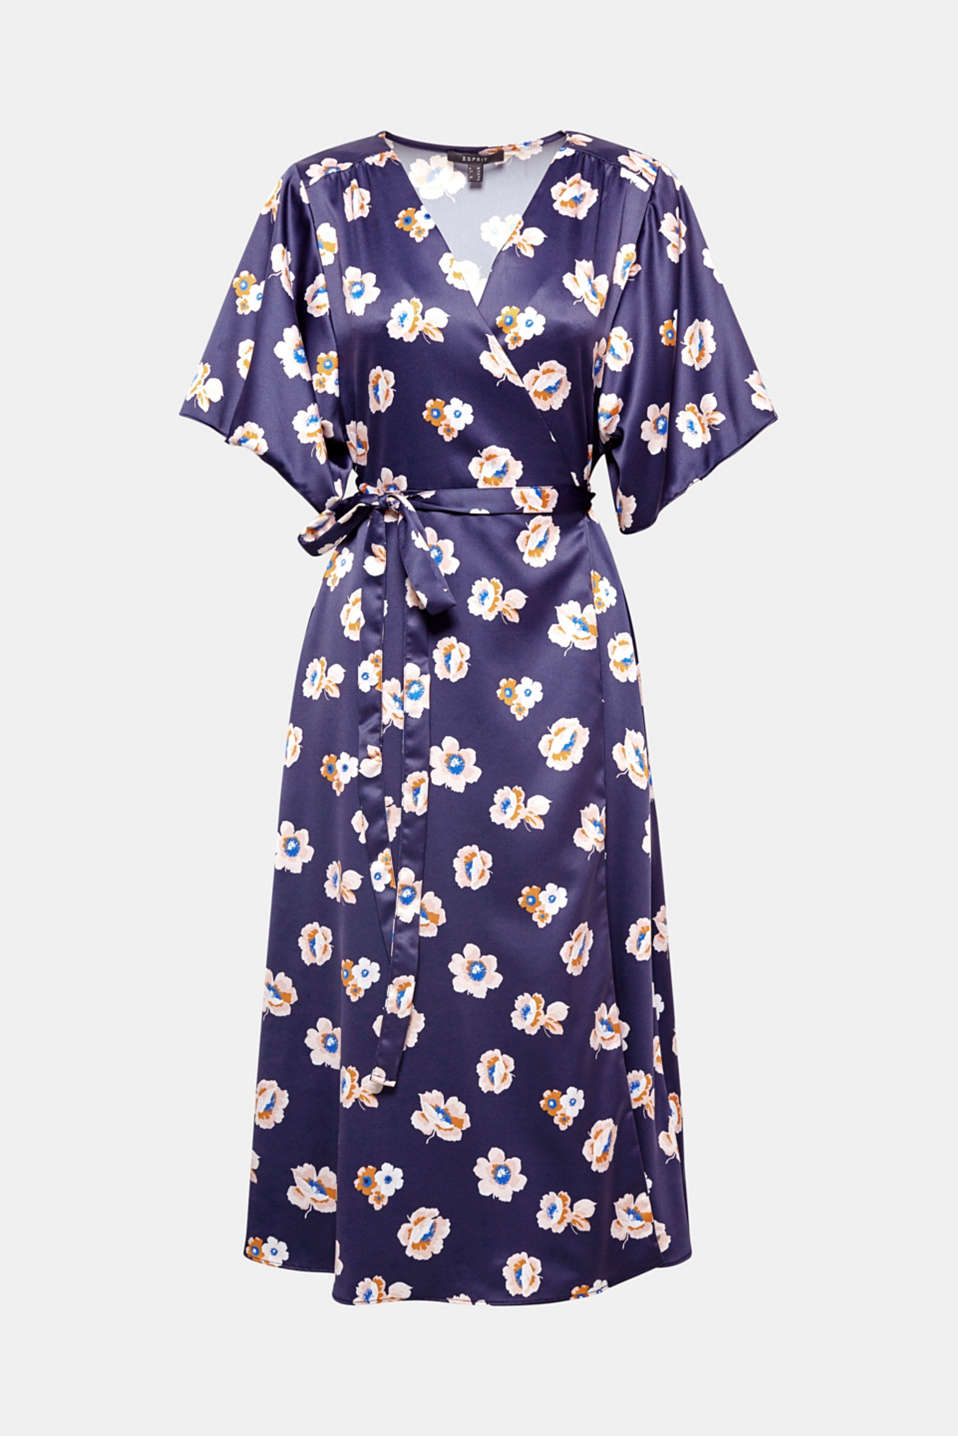 Flower power with a wrap-over effect! Delicately draped jersey wrap dress with a fixed skirt and ties at the sides.